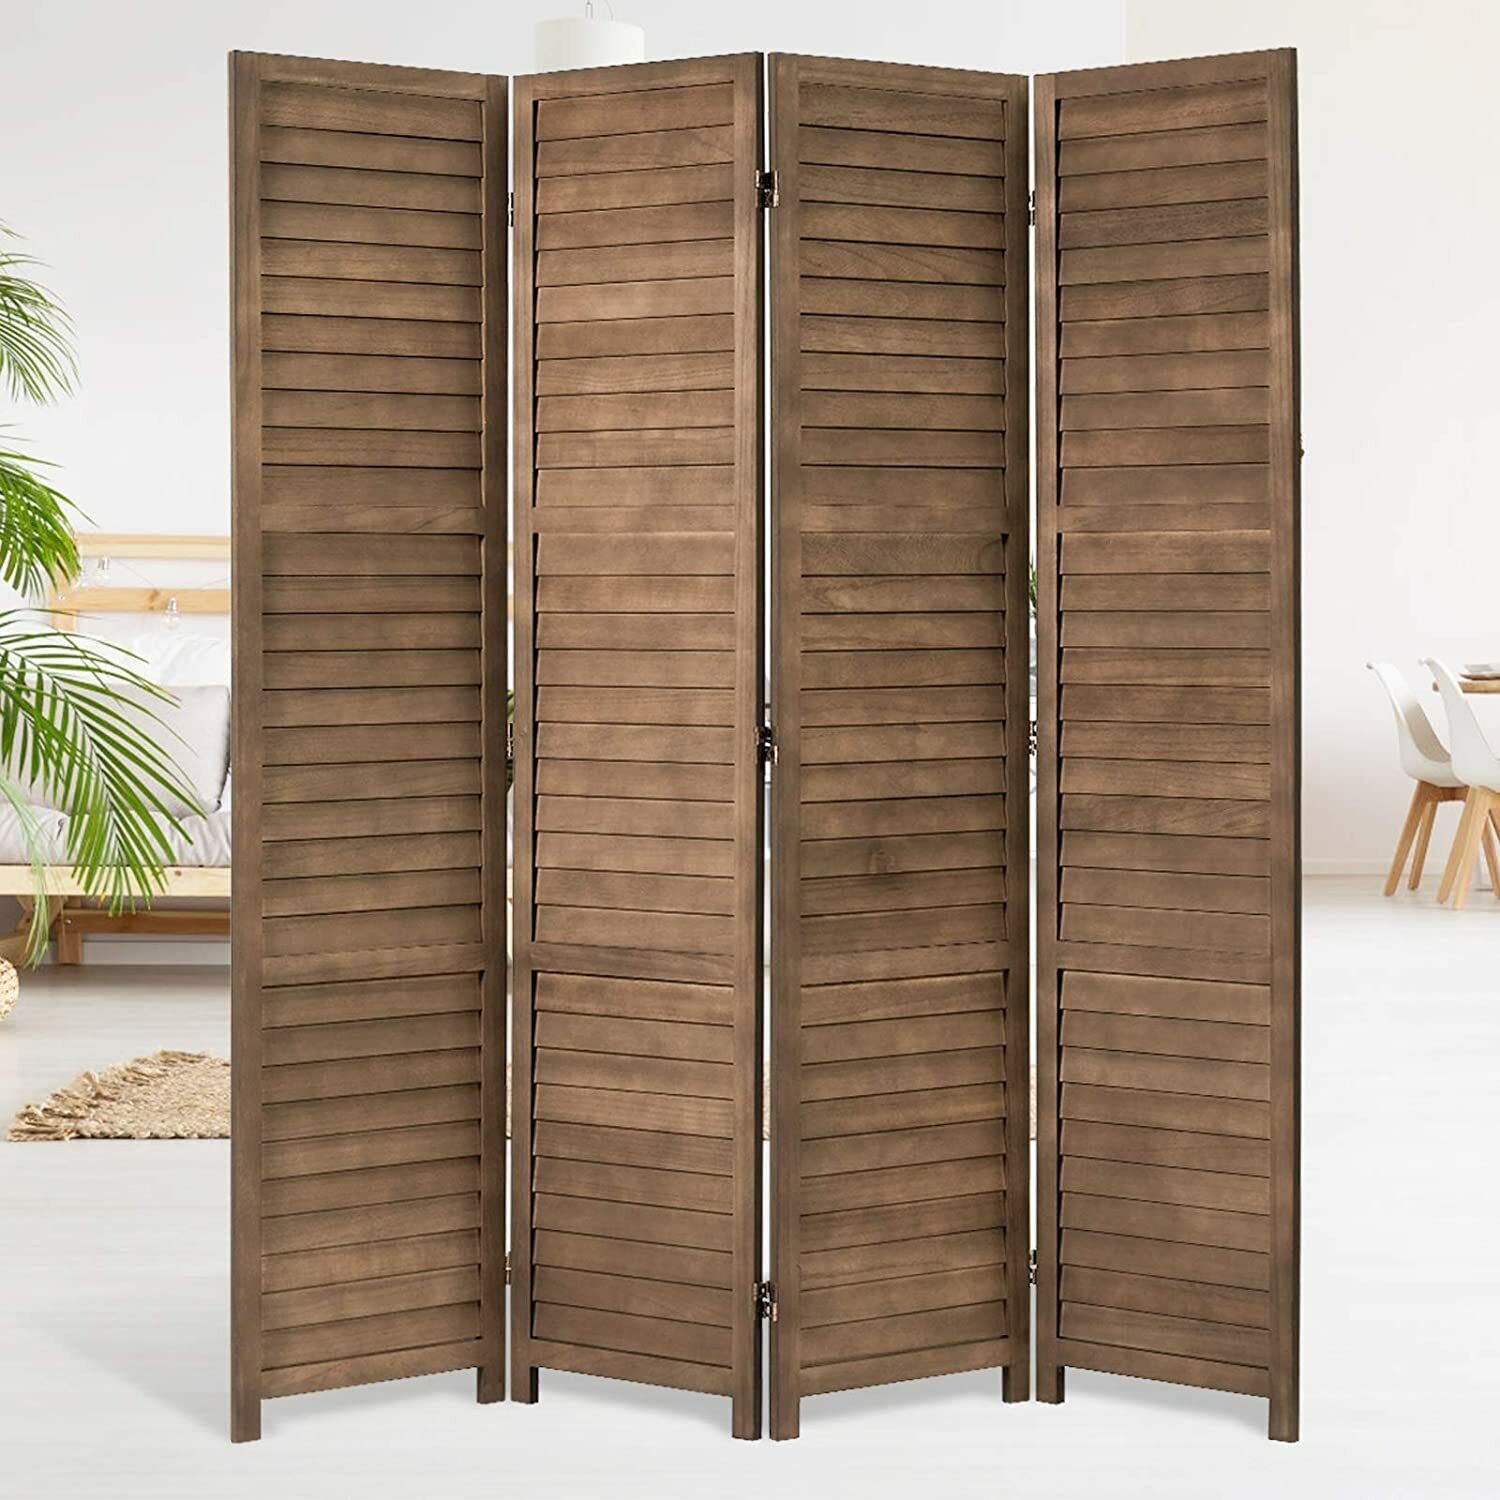 5.6 FT Vintage Room Divider Wood Freestanding Privacy Screen Partitions 4 Panels Furniture